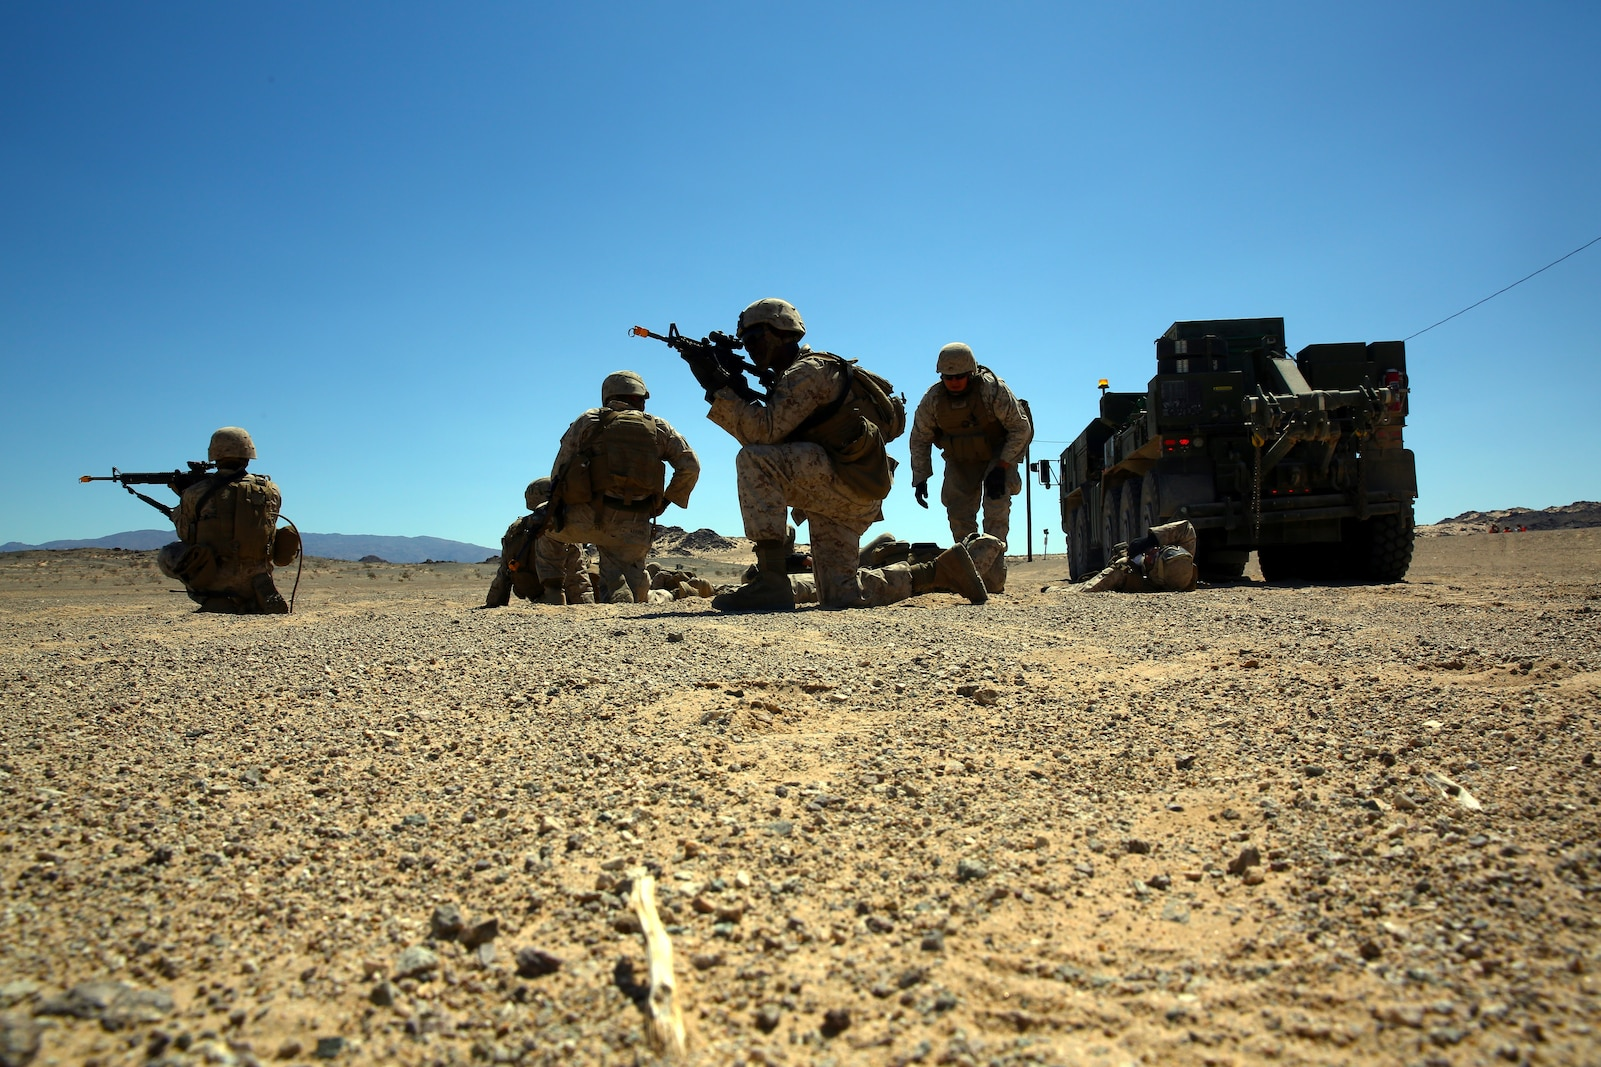 Marines with Combat Logistics Battalion 5, Combat Logistic Regiment 1, 1st Marine Logistics group, I Marine Expeditionary Force, set up a casualty evacuation sight as a hospital corpsmen evaluates the simulated wounded during exercise Backlog aboard Marine Air Ground Combat Center, Twentynine Palms, Calif., August 7, 2014. This exercise was the cumulating event of a 30-day integrated training exercise in which Marines were instructed in multiple types of convoys and standard operating procedures for unfamiliar scenarios. (Official Marine Corps Photo by Lance Corporal Ashton Buckingham)